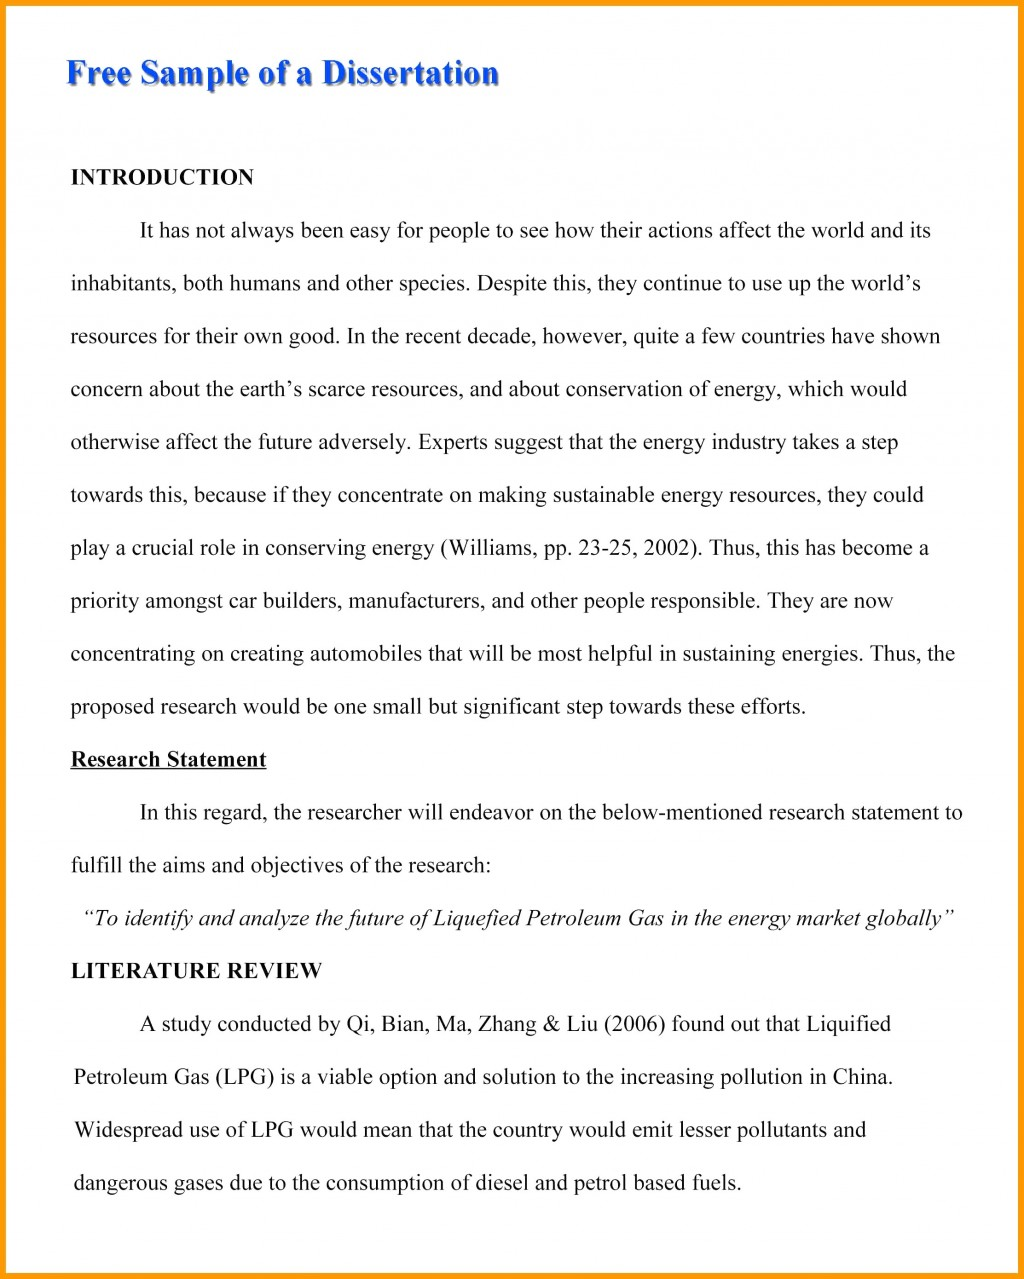 004 War On Drugs Research Paper Outline Filename Books Historical Pertaining To History Essay Impressive Rubric High School Template Large